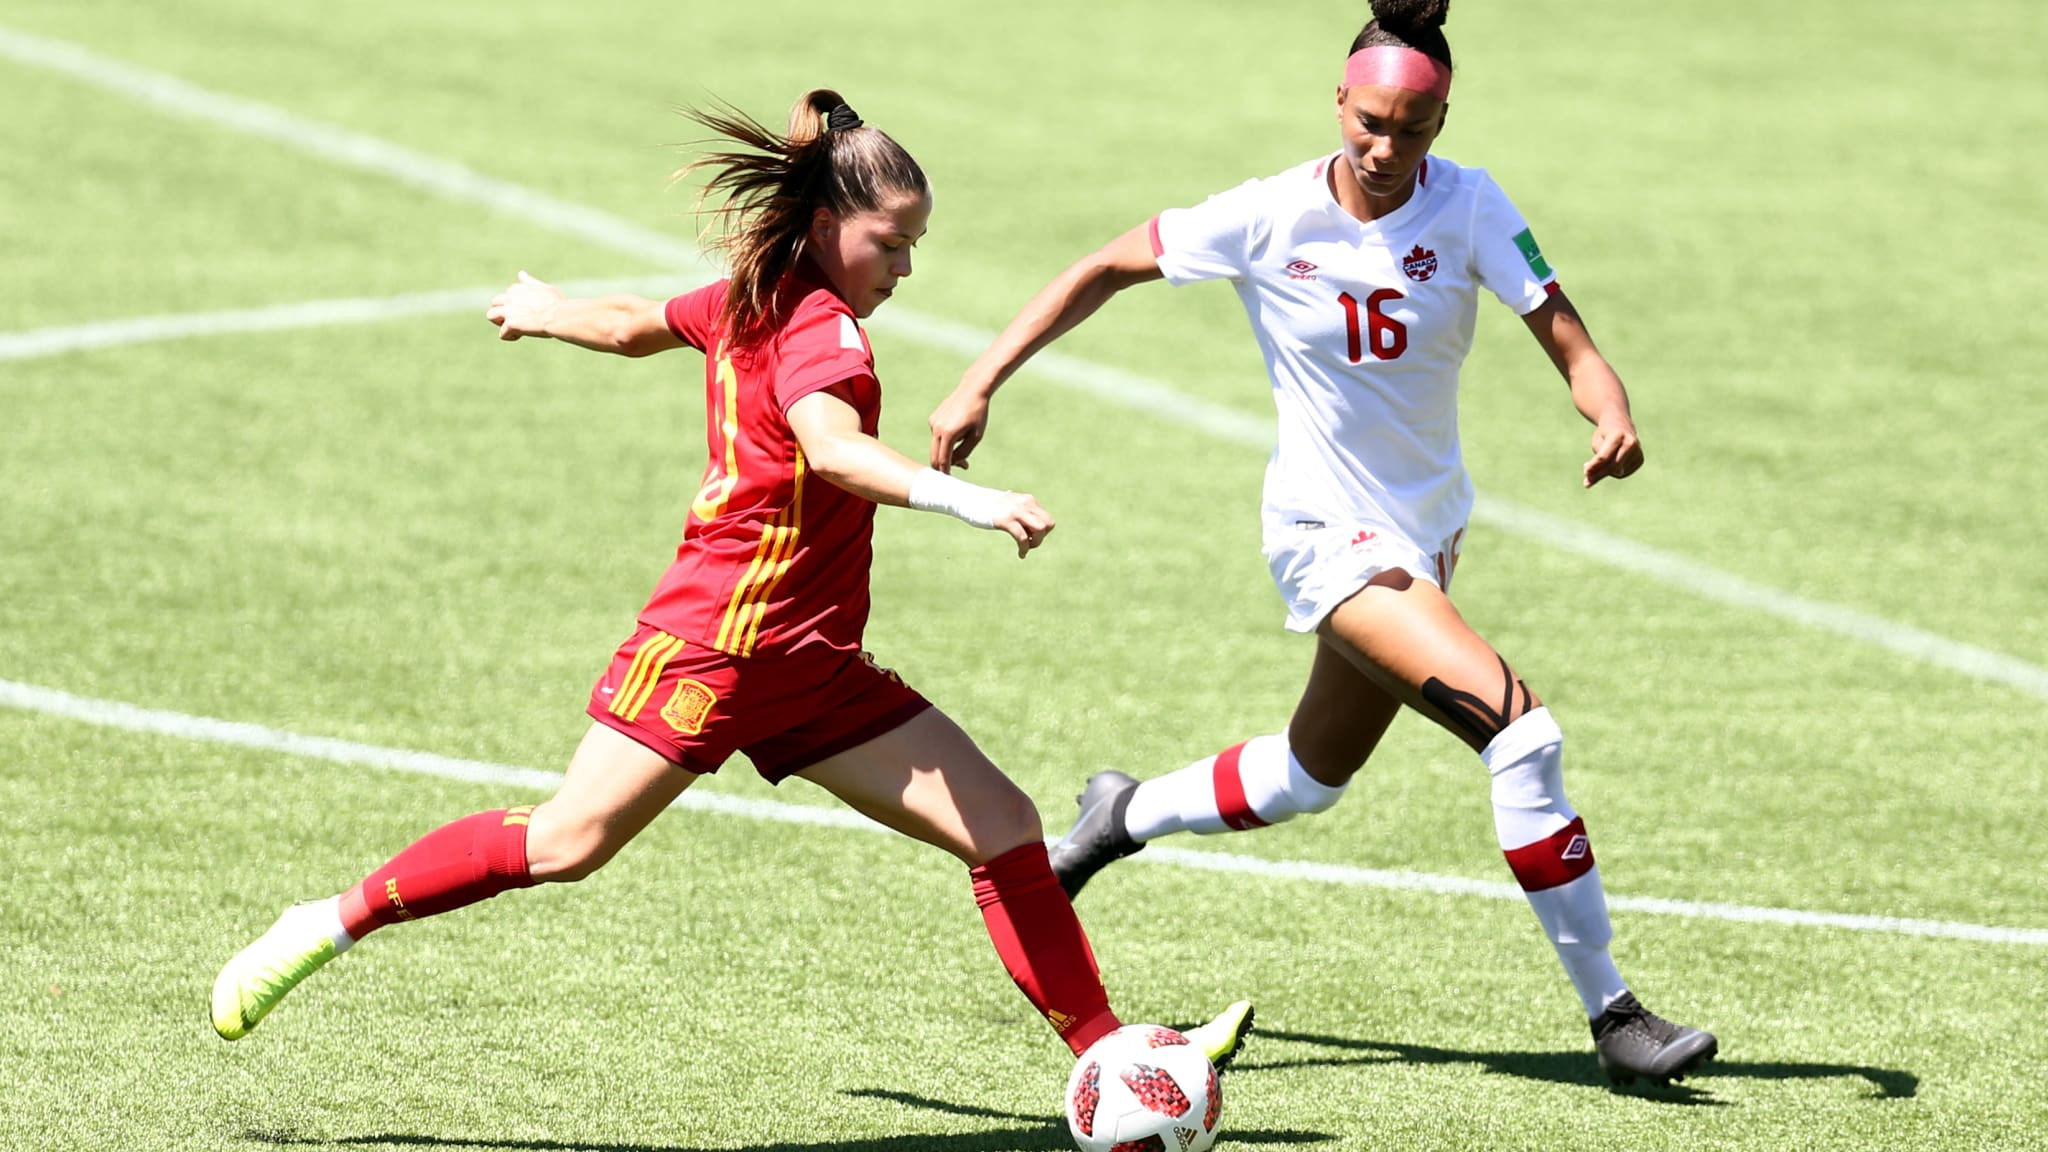 Quarter-final line-up decided as Spain and Germany register emphatic wins at FIFA Under-17 Women's World Cup